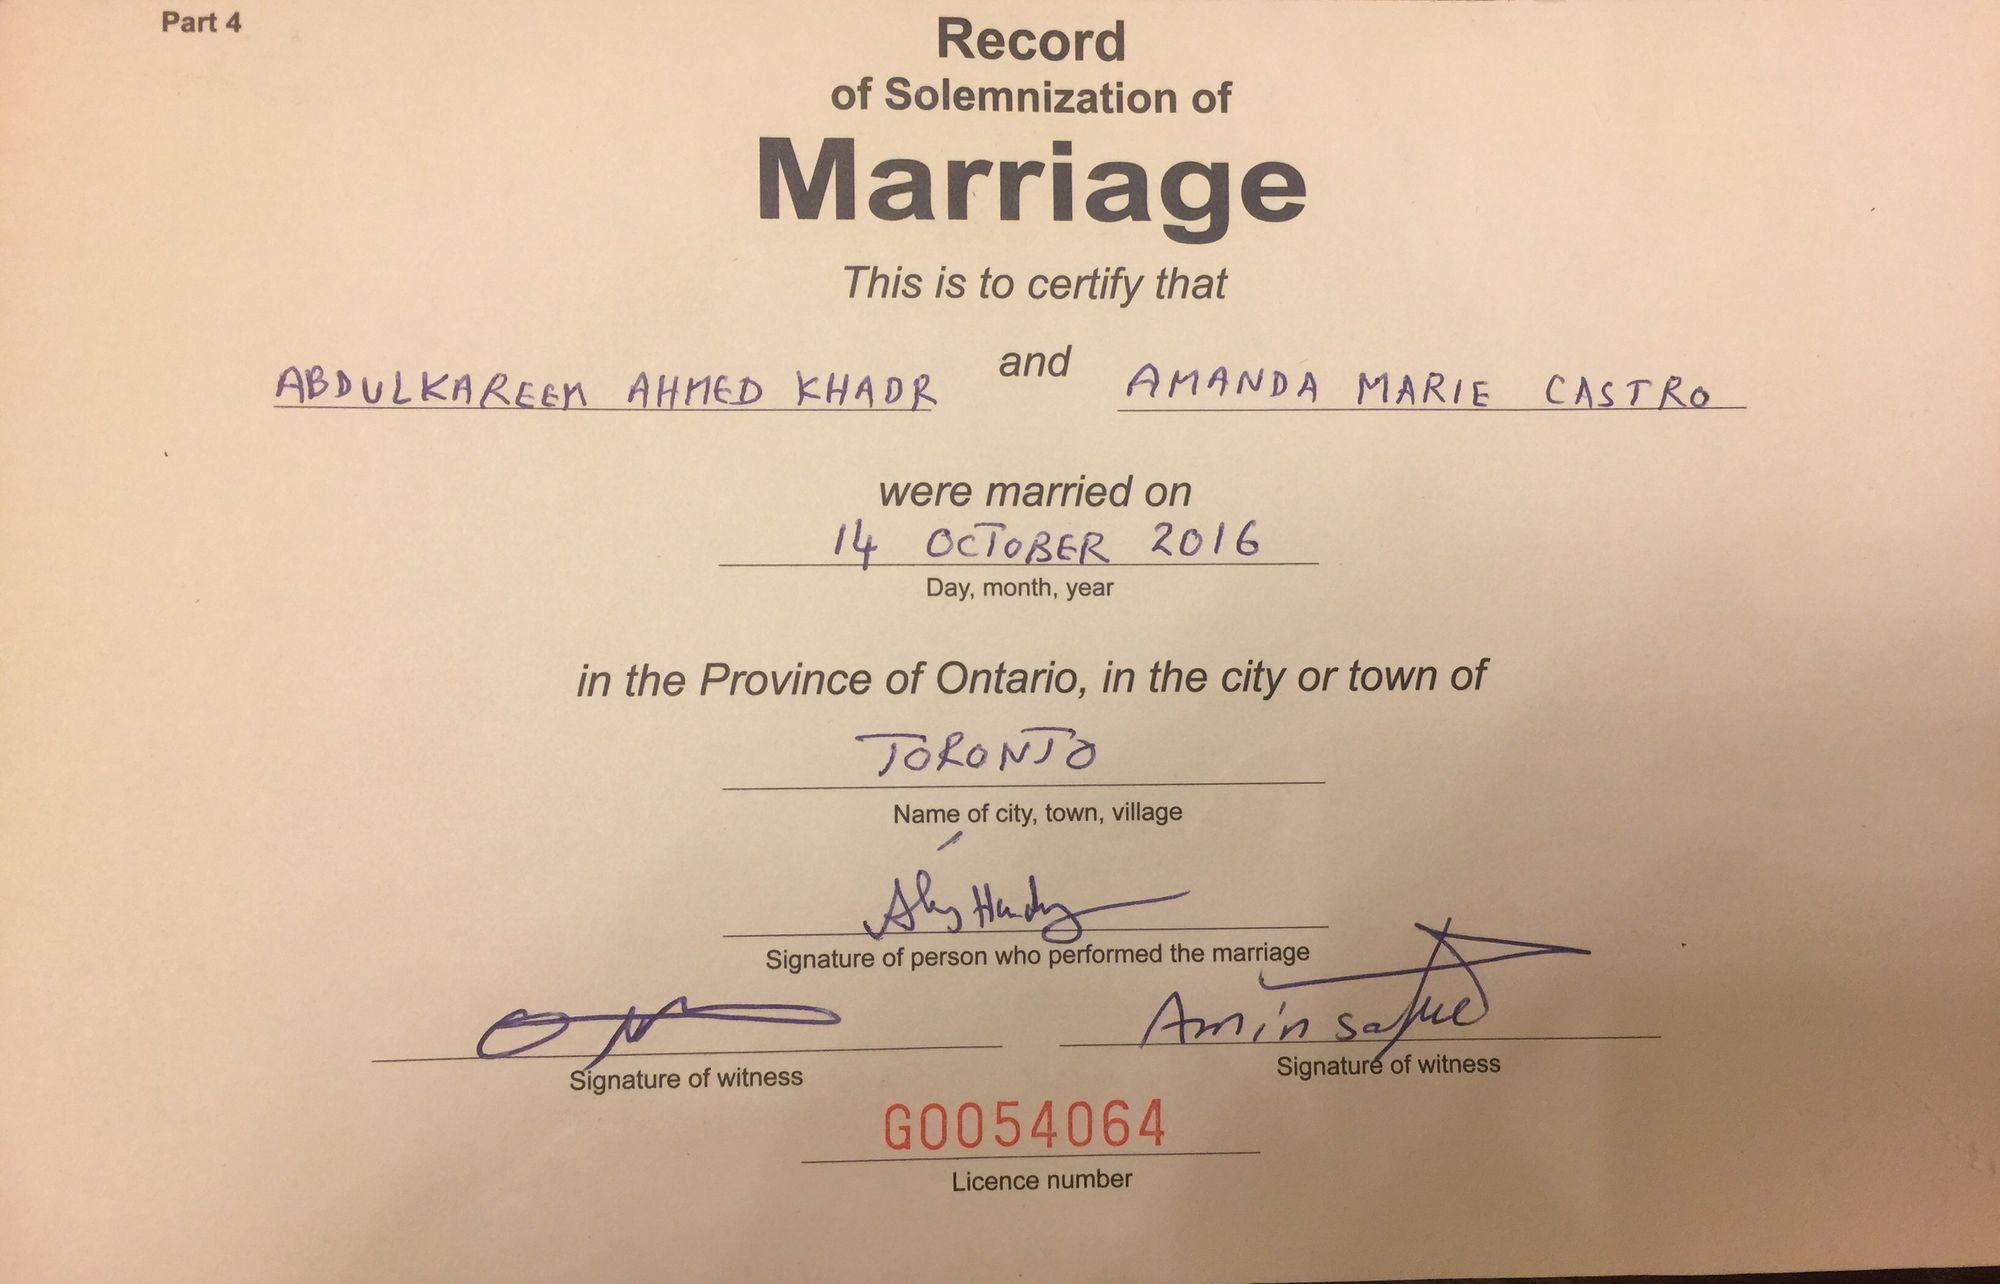 Toronto Imam is issuing religious marriage certificates for polygamous relationships